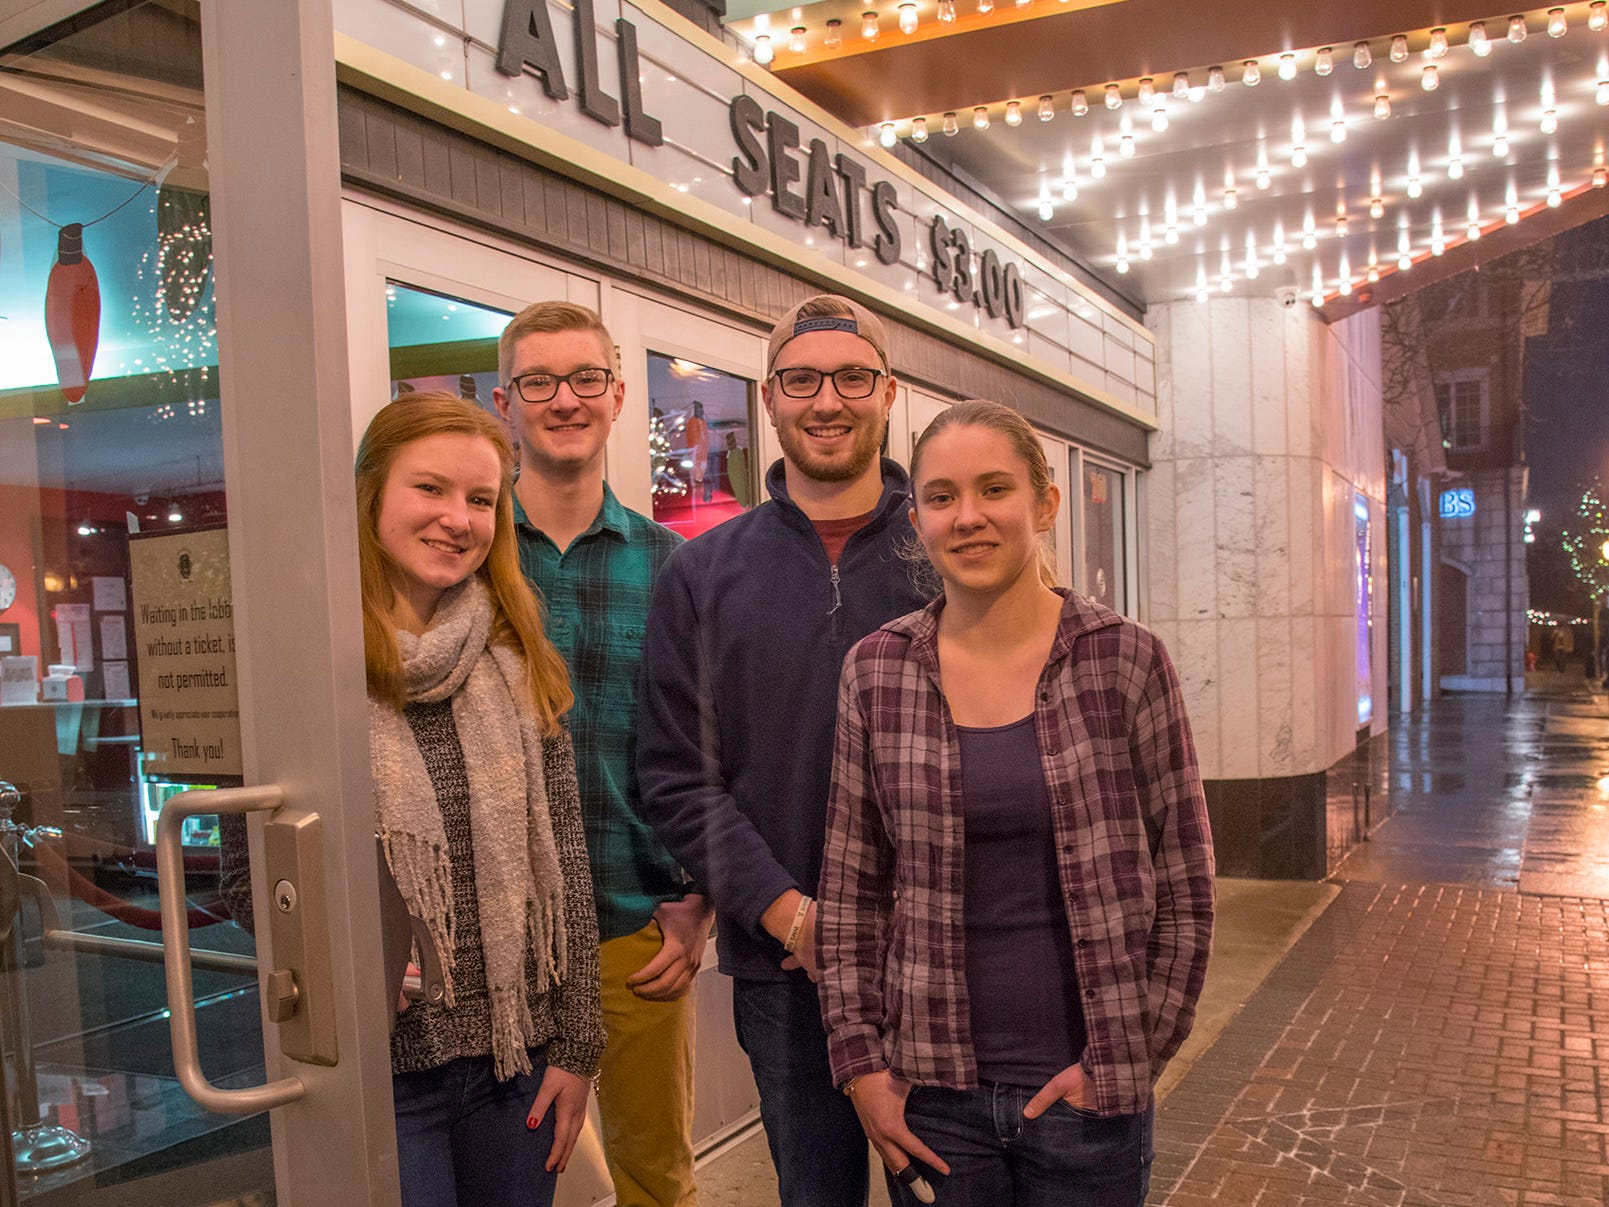 The Sandberg kids, Catherine, 19 years old, Patrick, 18, Nick, 24, and Melanie, 22, at the Penn Theater.